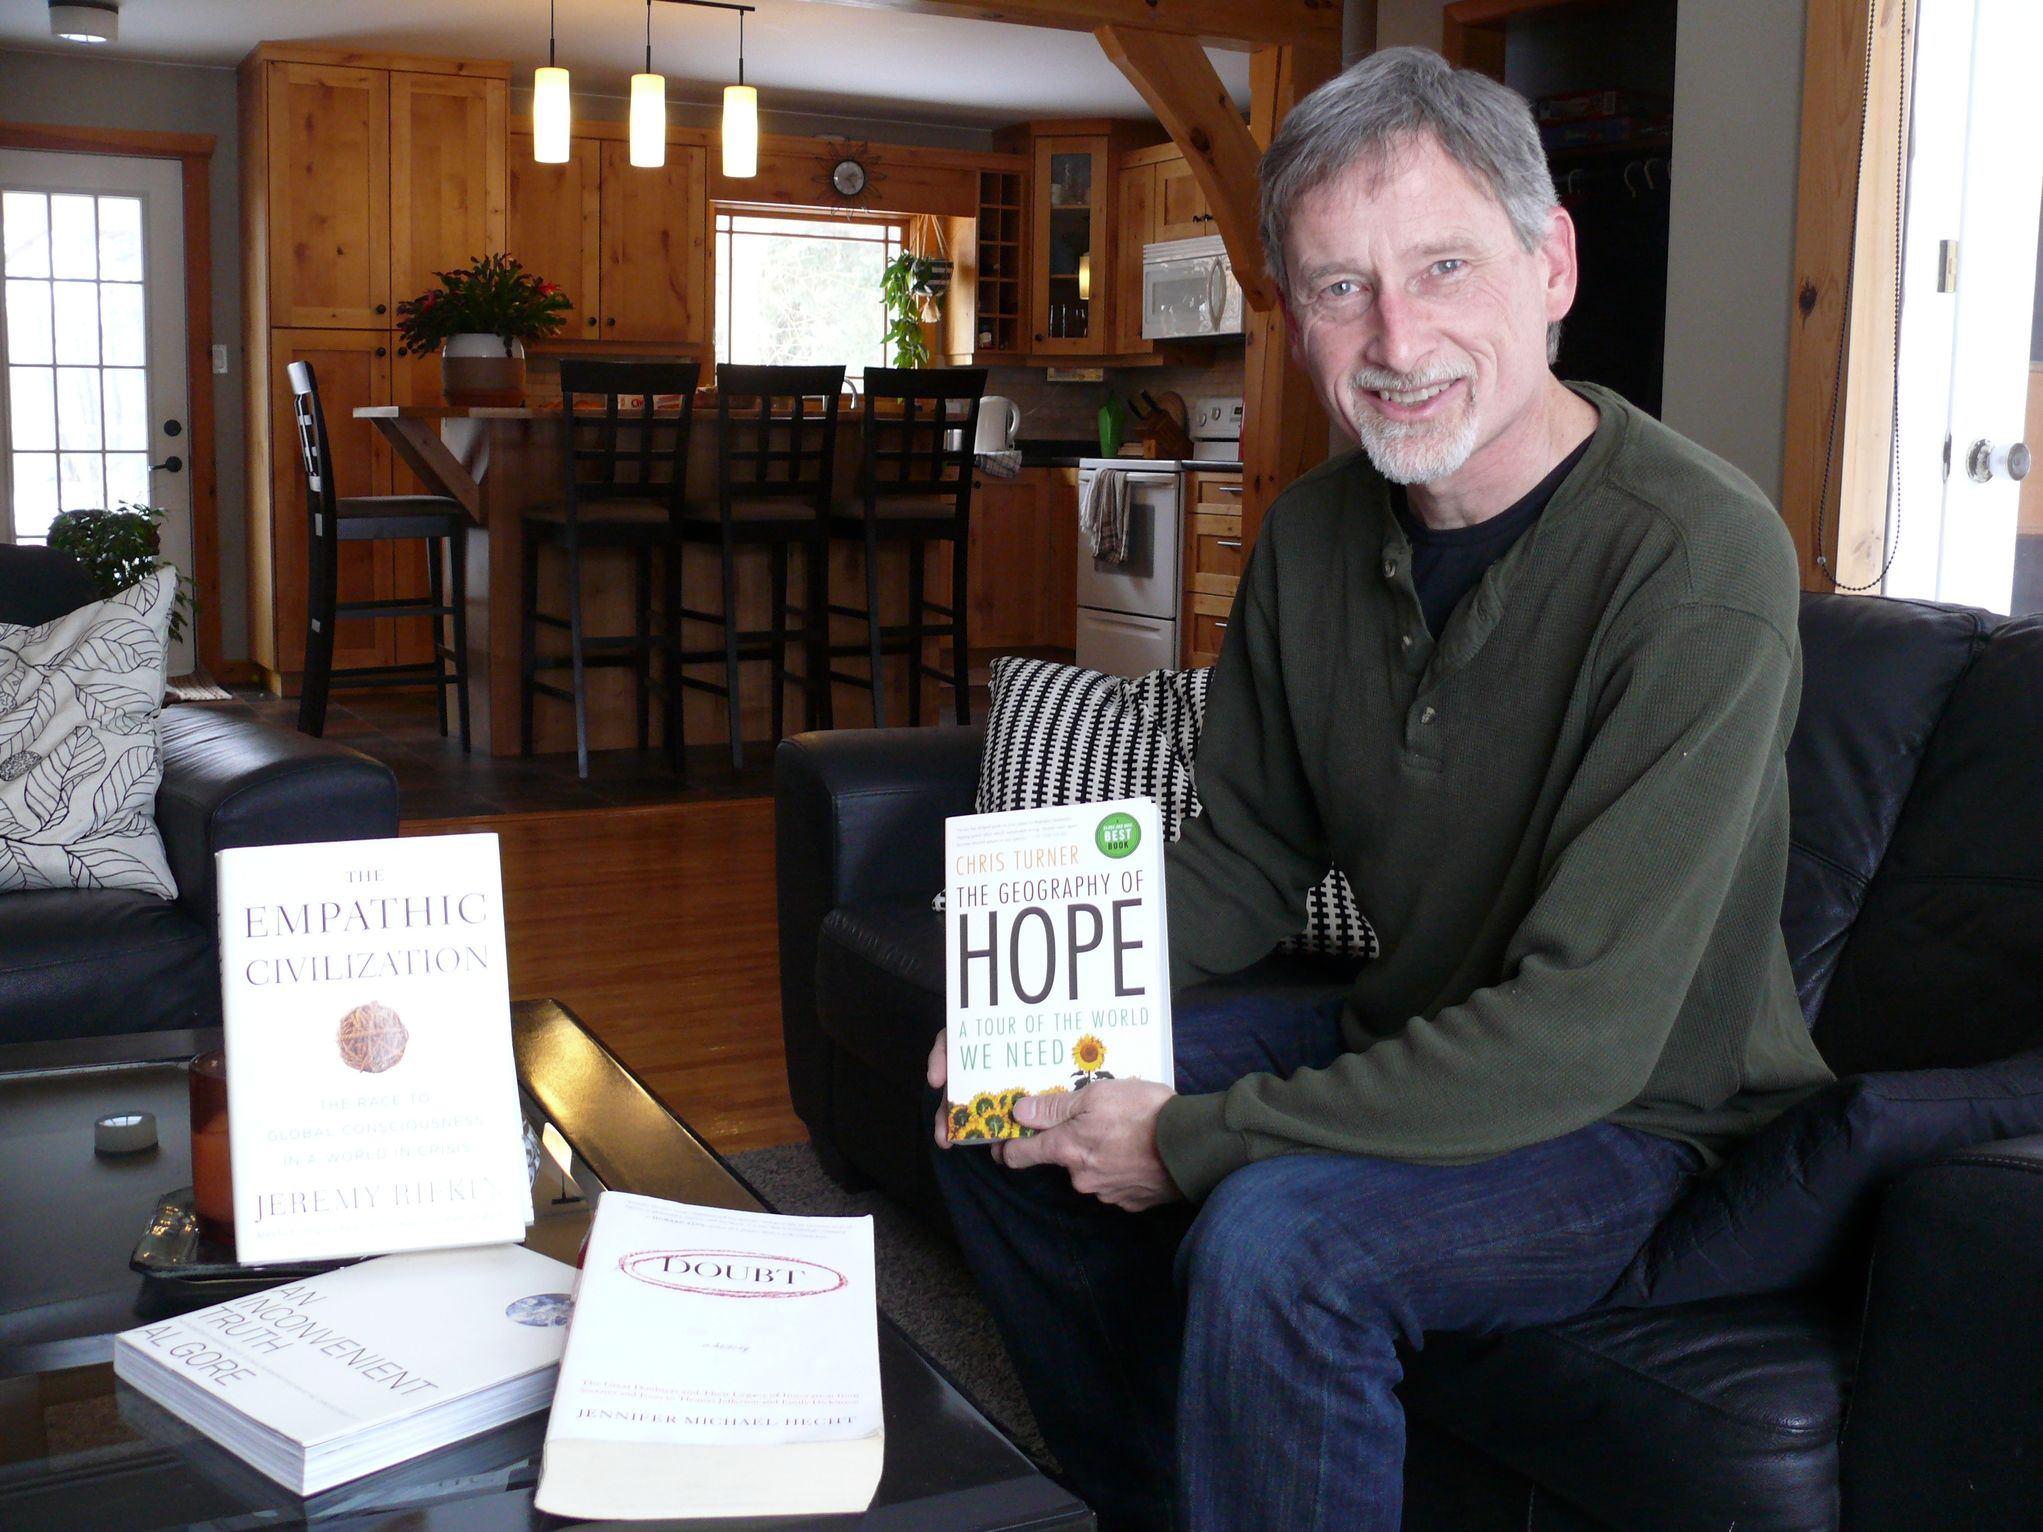 Eastman Humanist Community president Gary Snider displays a collection of influential books on humanism at his home in Steinbach. While EHC meetings are free to attend, Snider said some of the group's two dozen members participate discreetly to avoid negative consequences among family or colleagues.